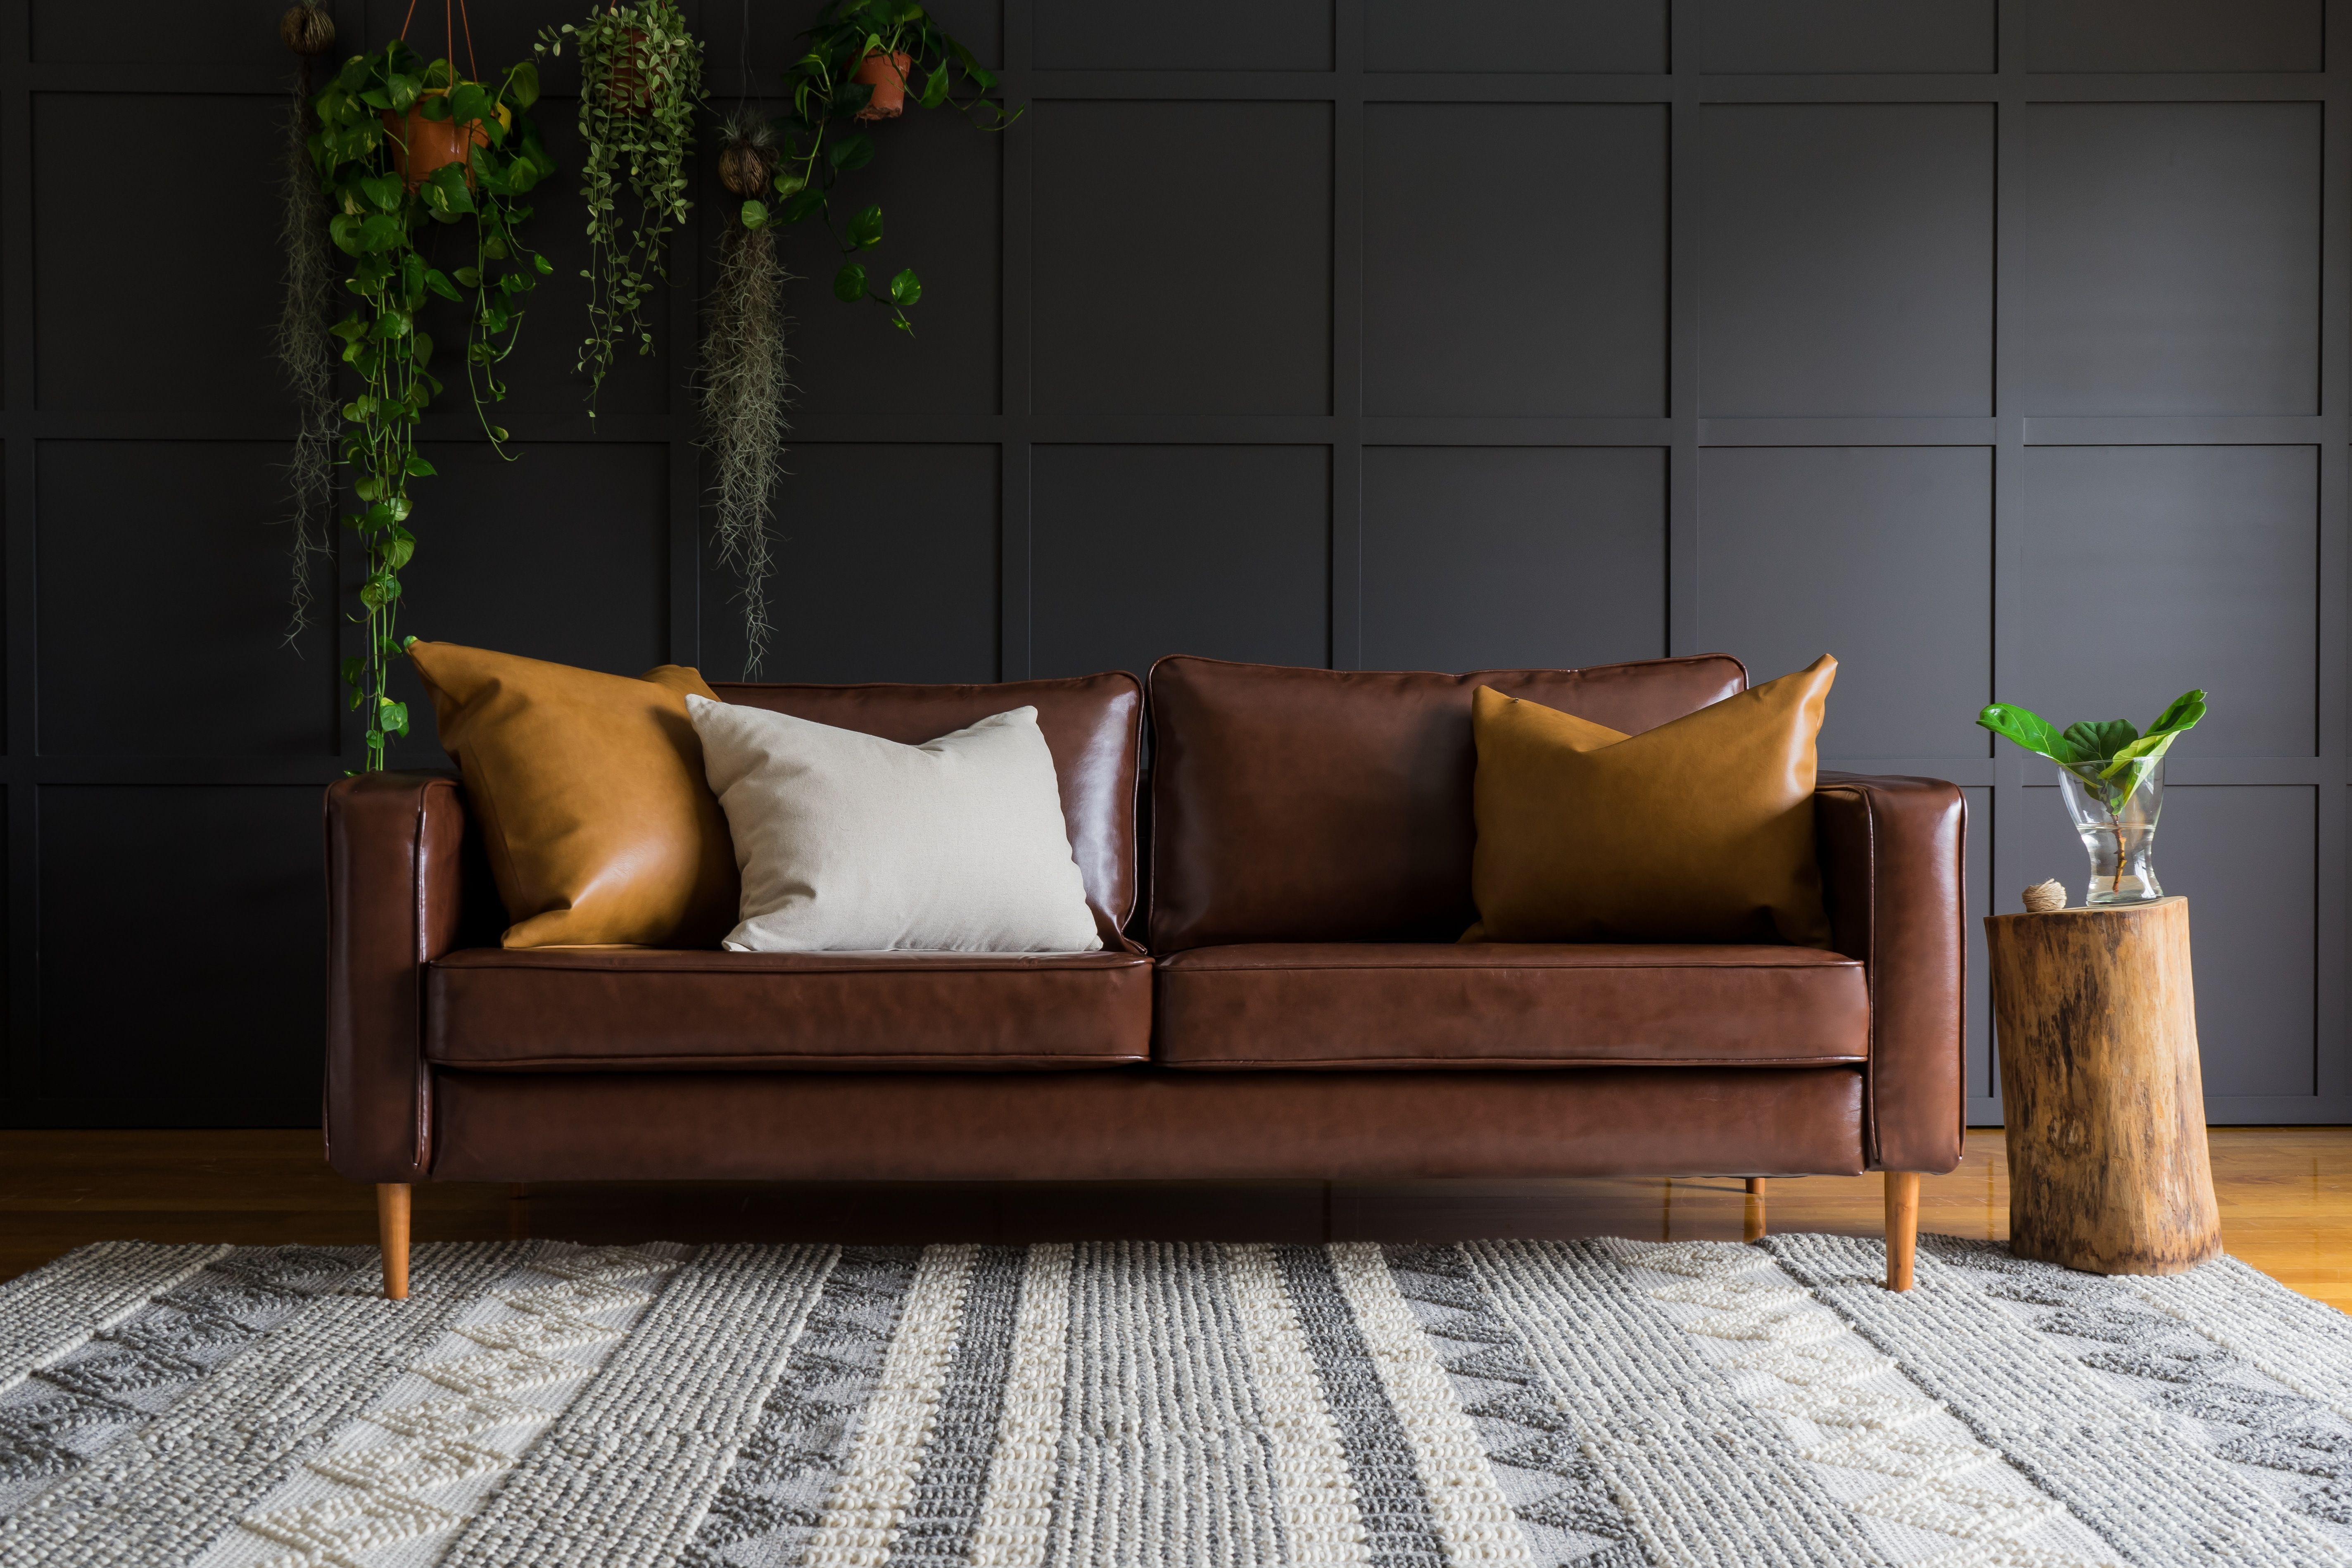 Miraculous Leather Slipcovers For The Karlstad Sofa From Ikea And Much Alphanode Cool Chair Designs And Ideas Alphanodeonline